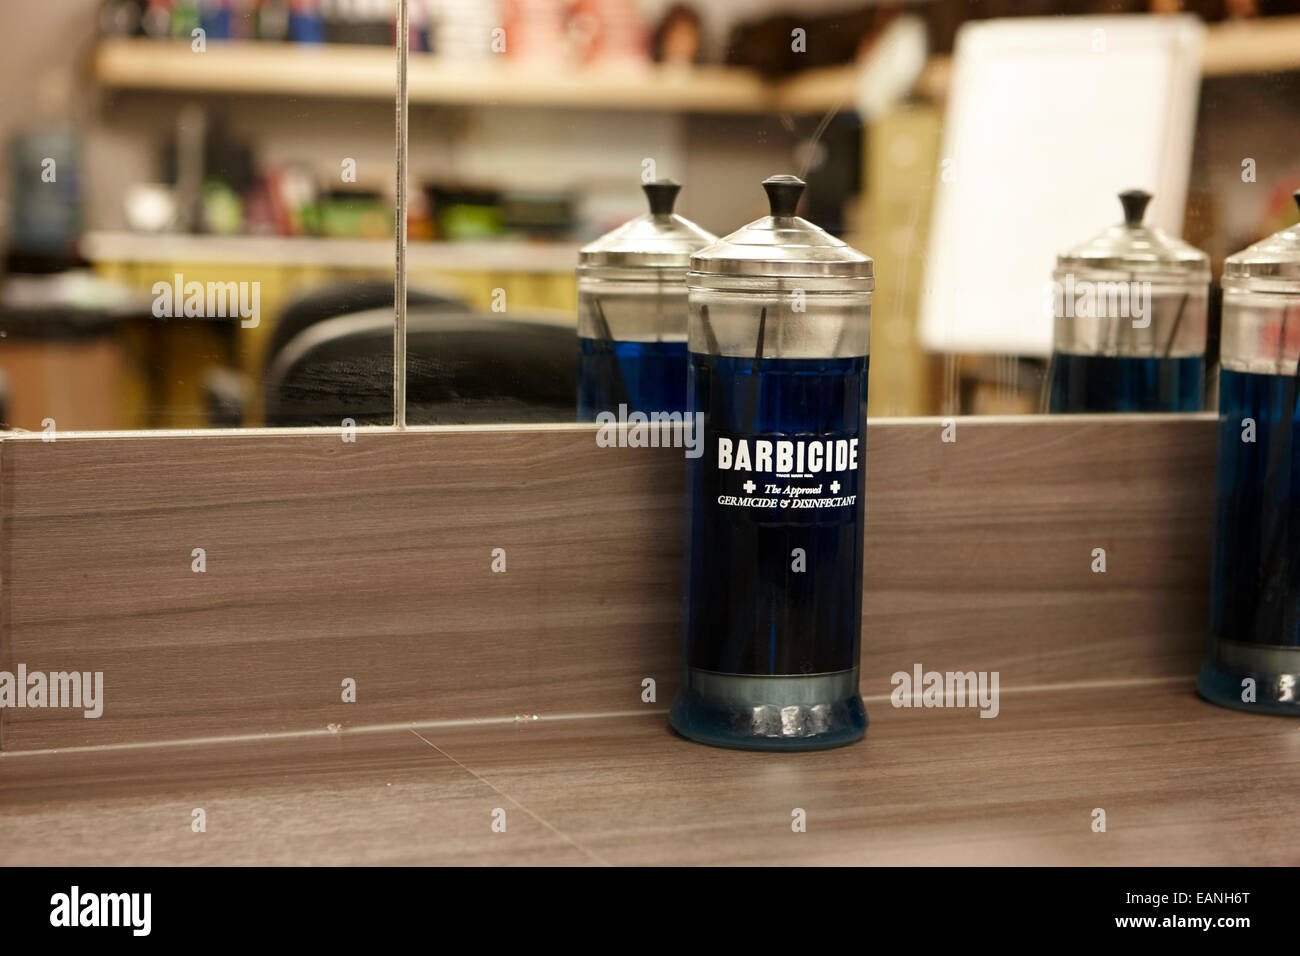 barbicide disinfectant solution in a hairdressers salon - Stock Image